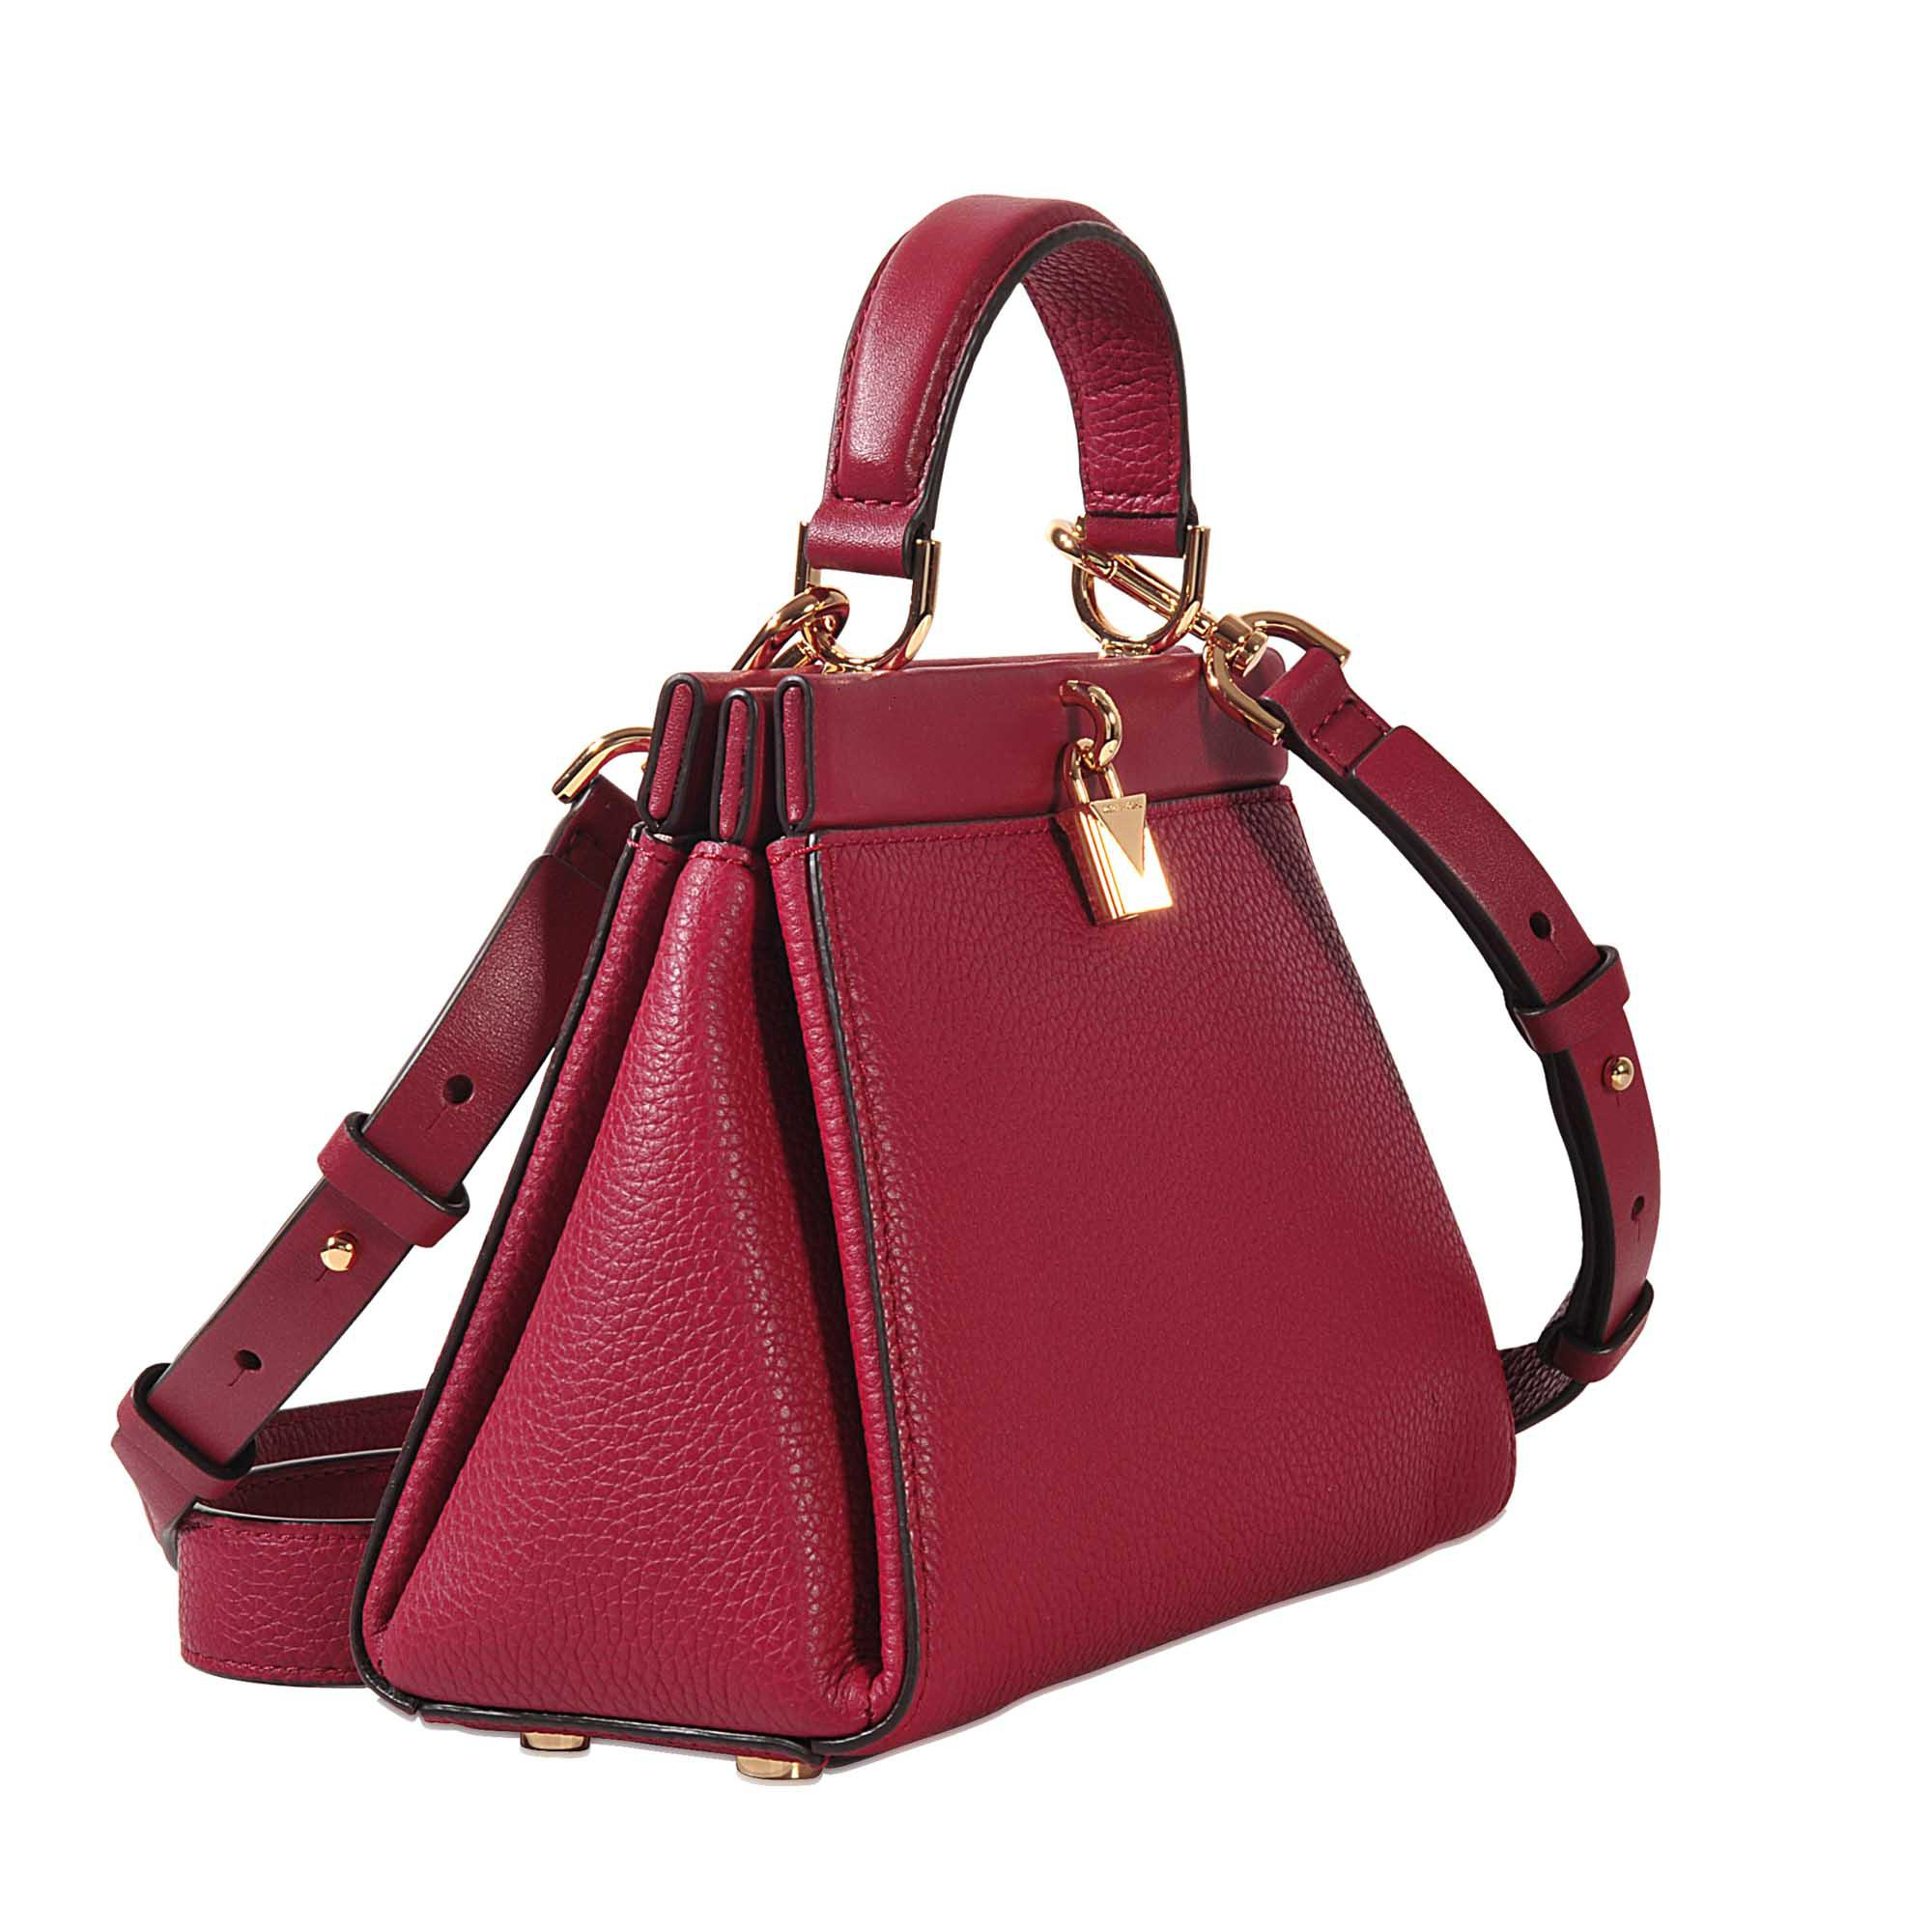 7749f701fa4a Lyst - MICHAEL Michael Kors Gramercy Frame Sm Th Satchel in Red